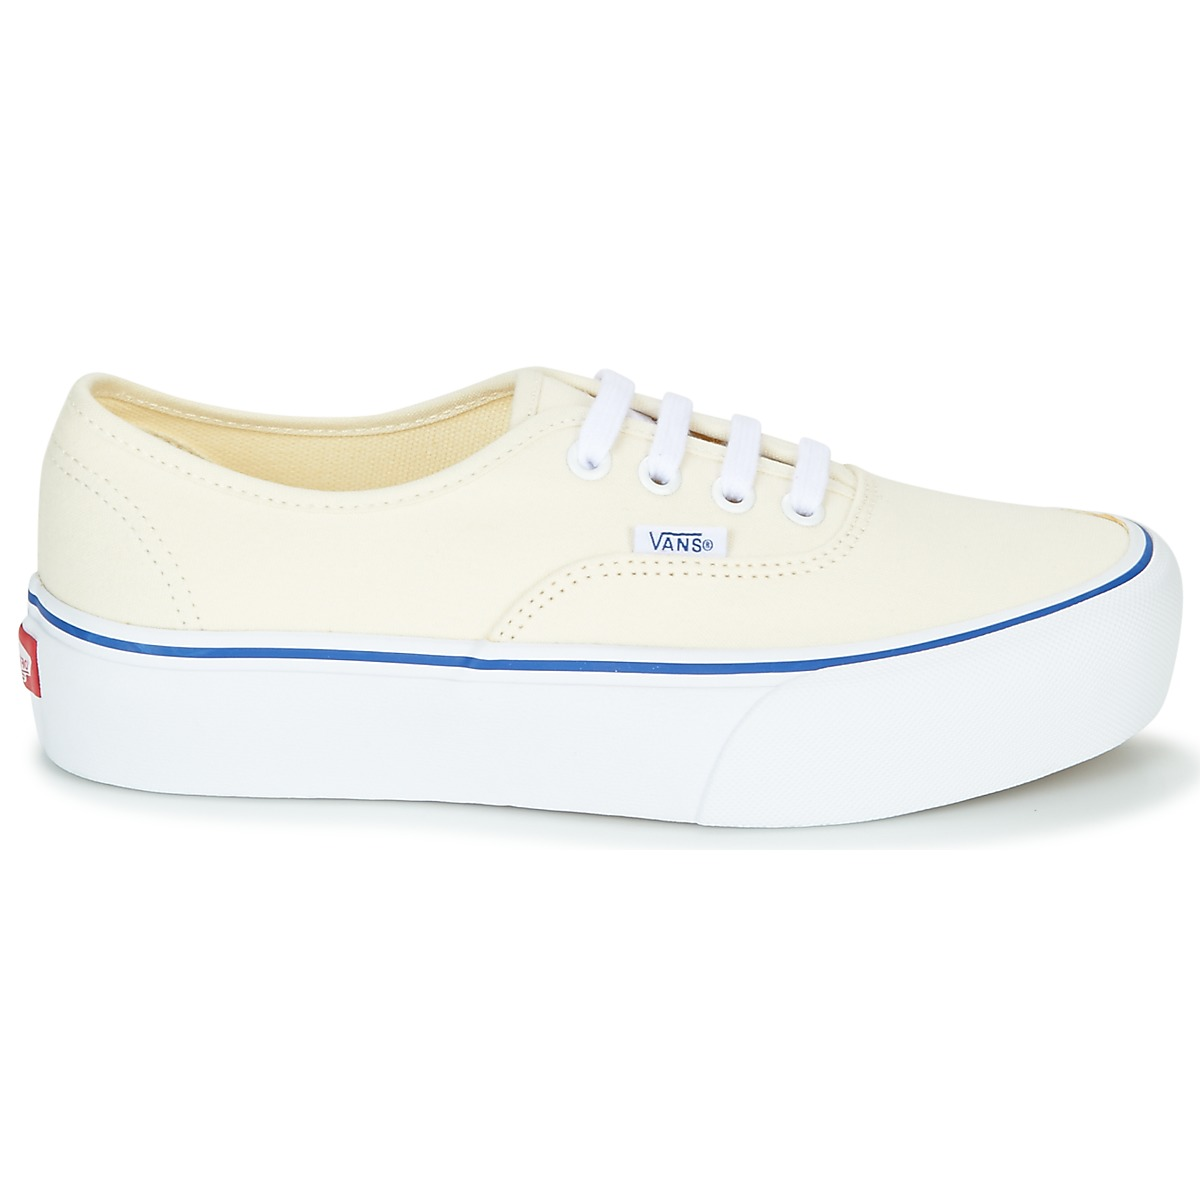 0 2 Platform Basses Vans Authentic Baskets zMpqVSU